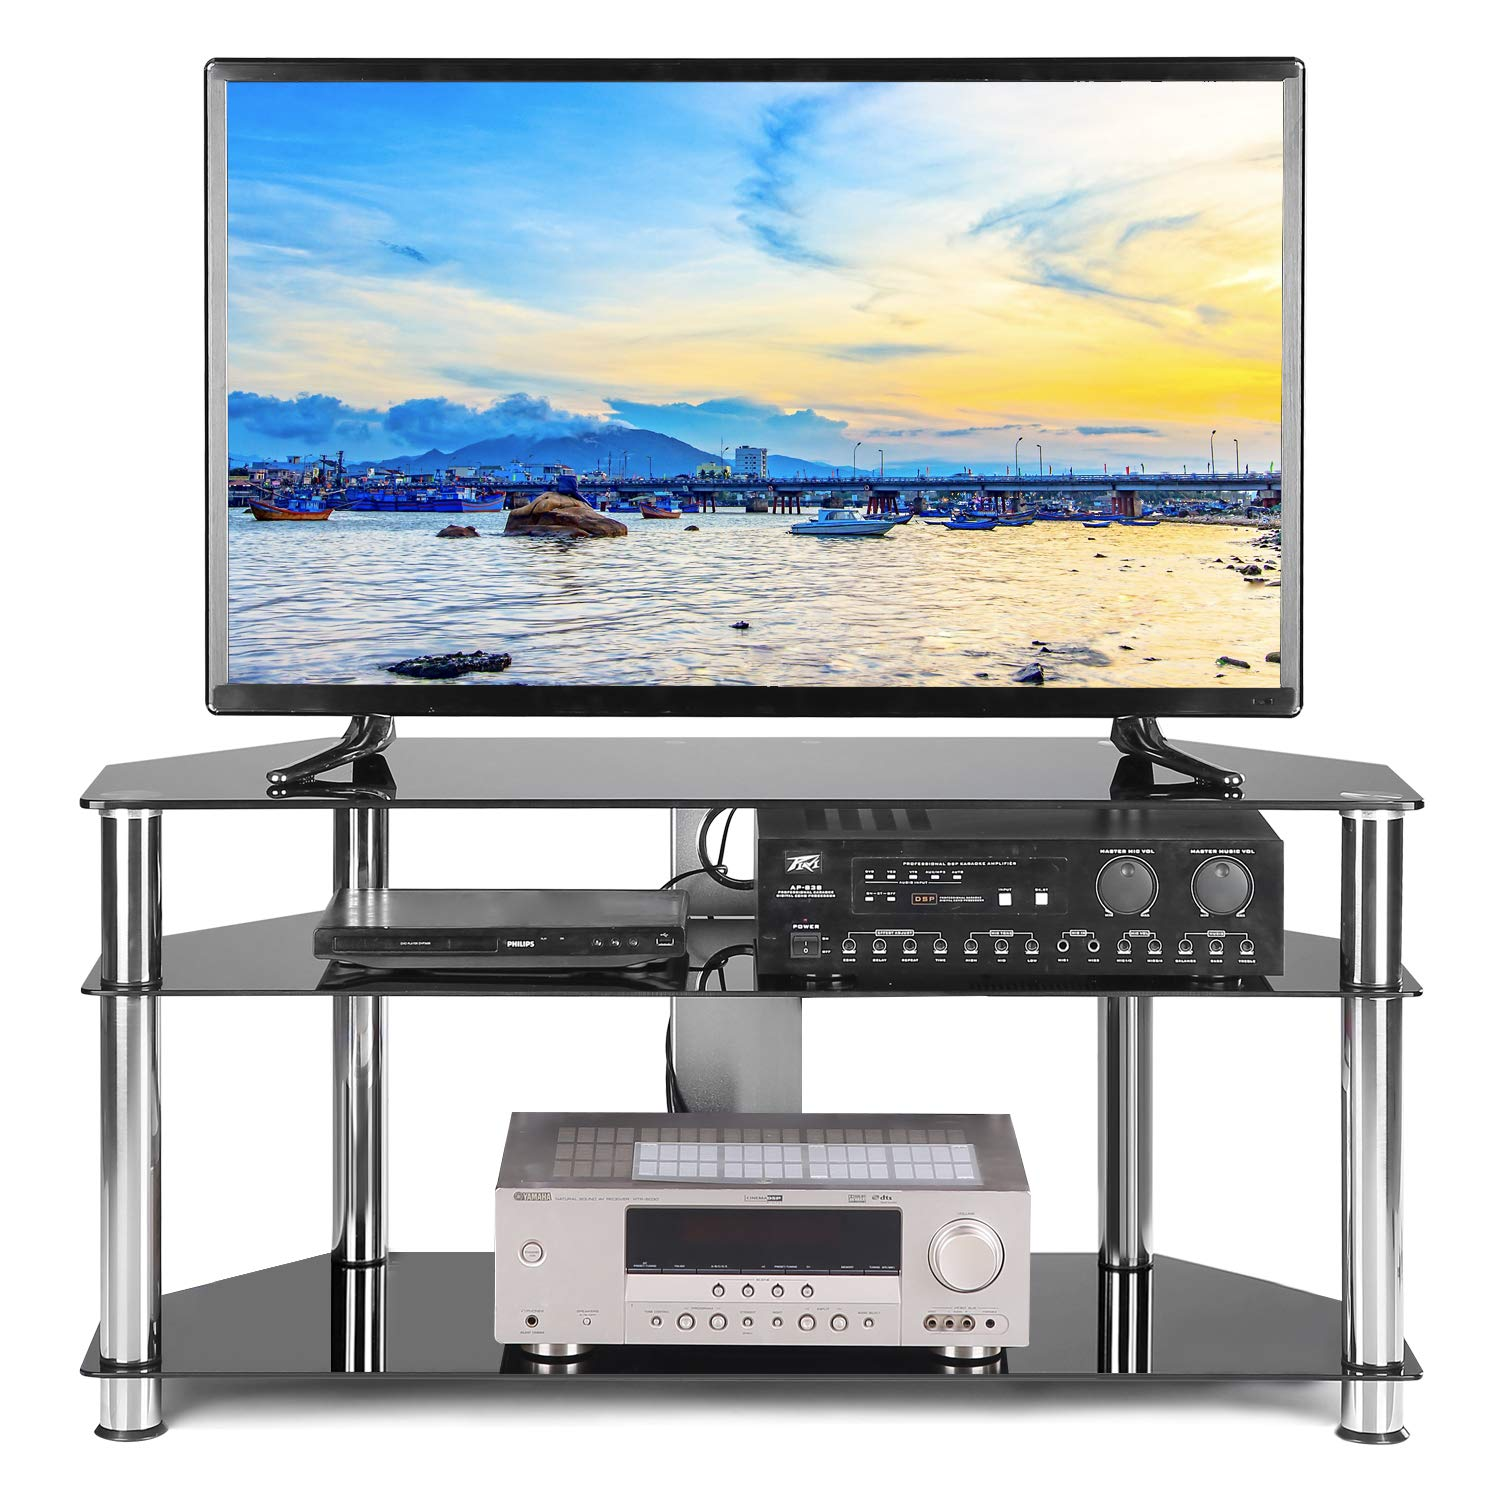 TAVR Swivel Tabletop Universal TV Base Stand with Height Adjustable Mount for 27 32 37 42 47 55 inch LCD LED Flat Screen TV Tempered Glass Base Wire Management,Weight 88Lbs,VESA 400x400mm UT1002X